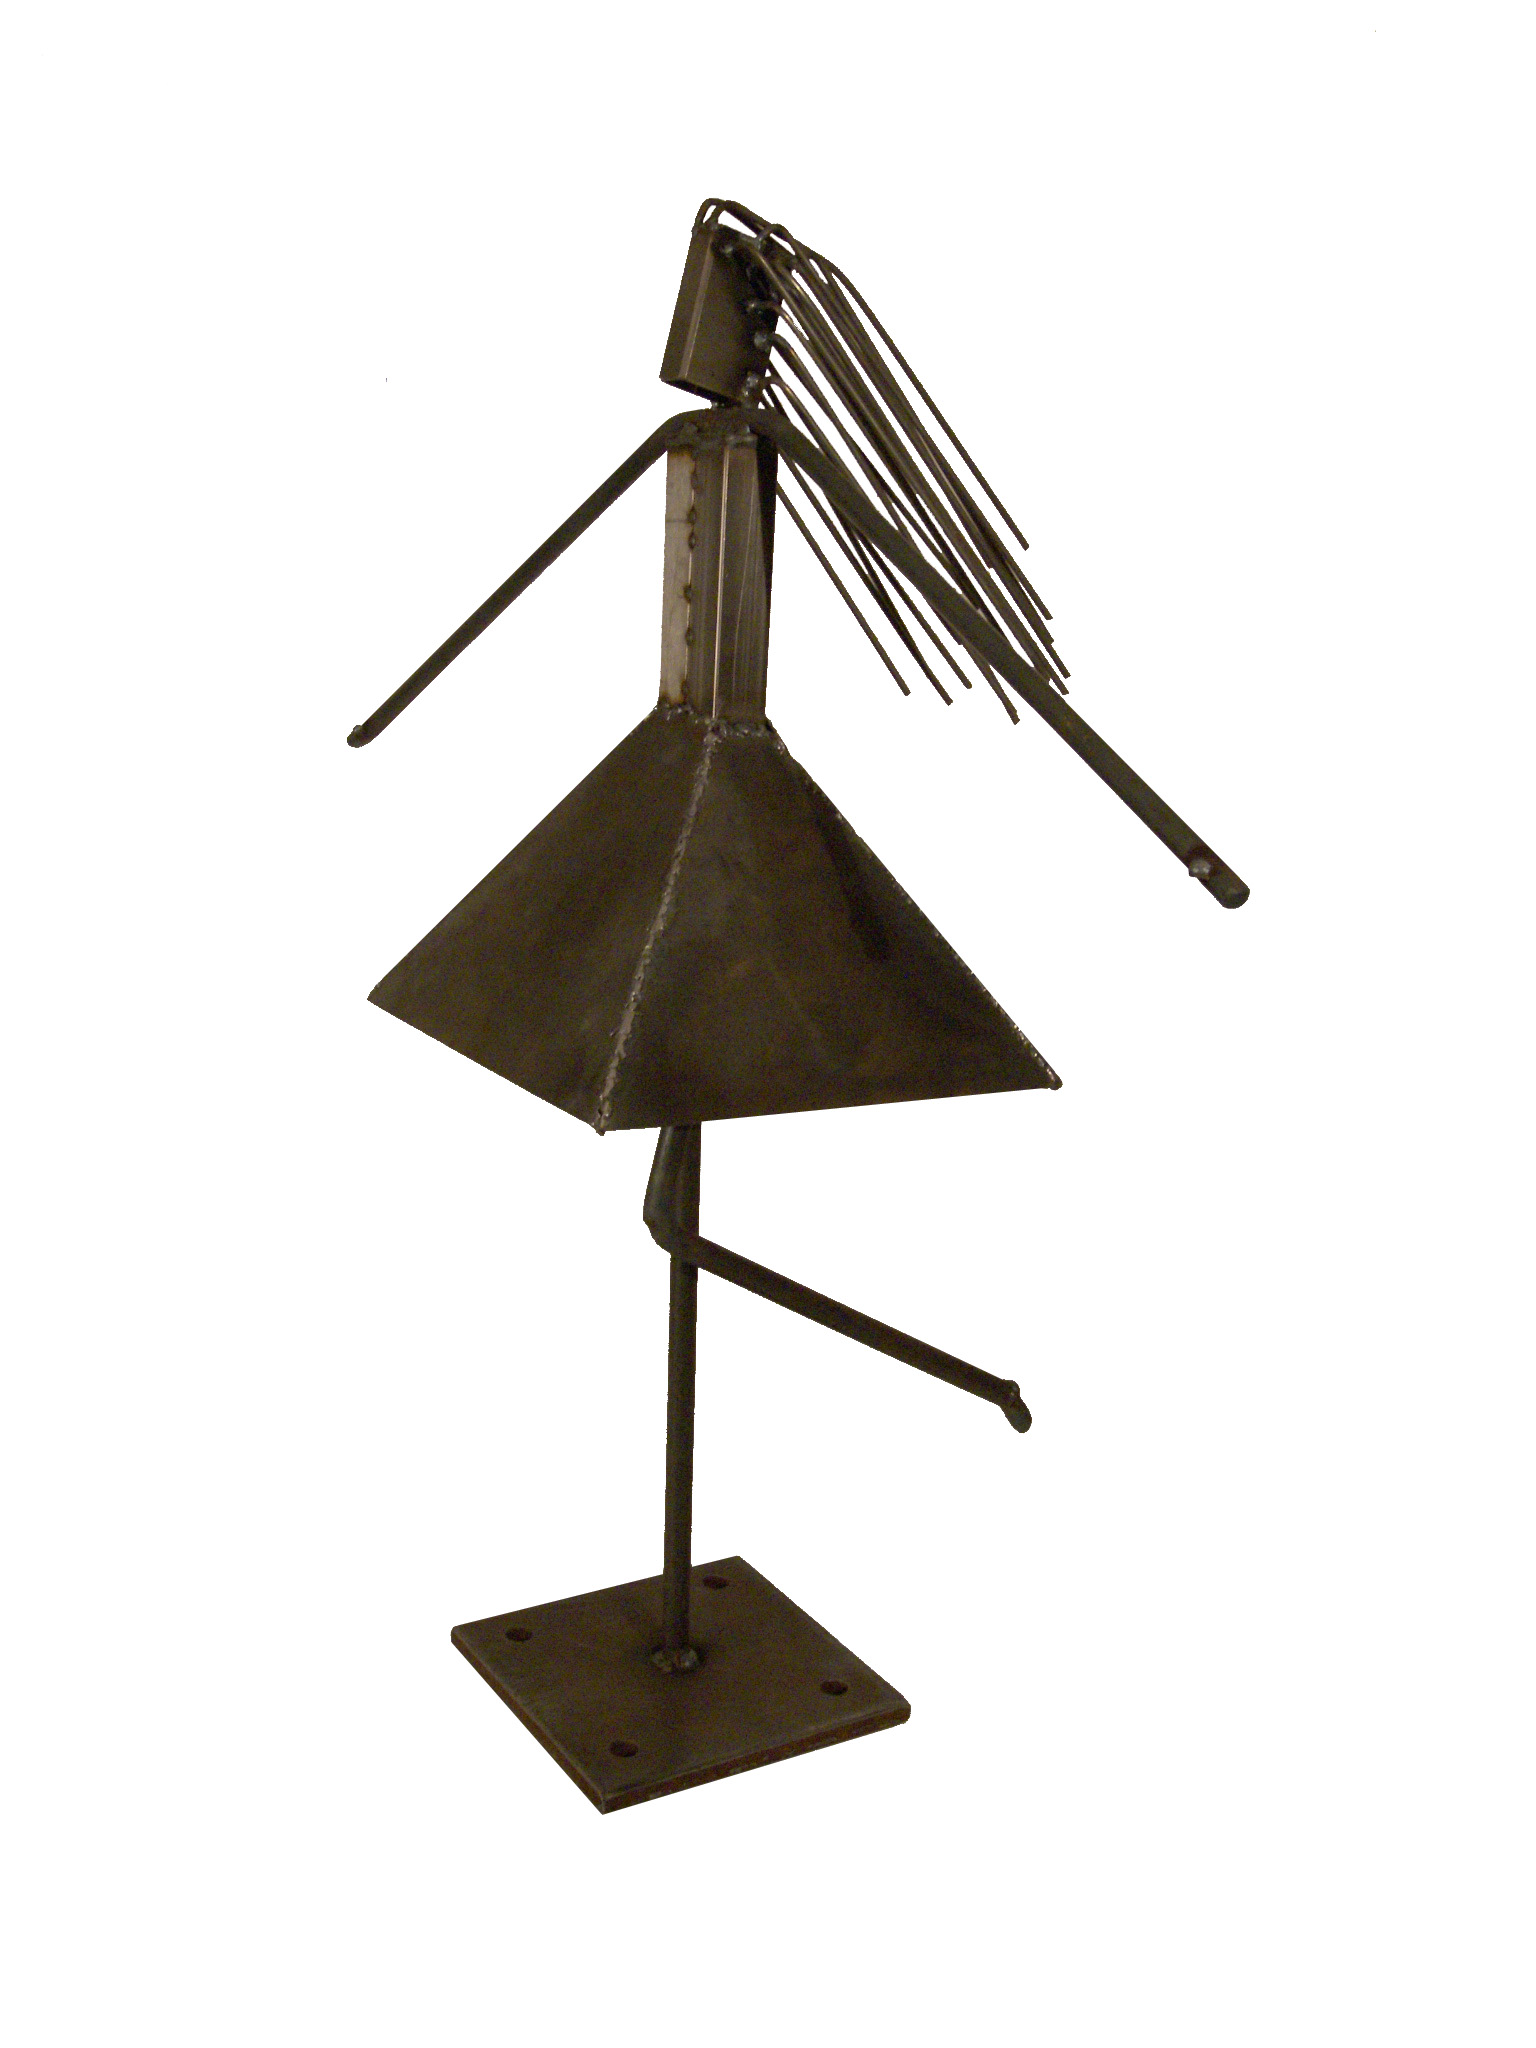 Wide Skirt, a metal sculpture of a woman with long, flowing hair and big skirt